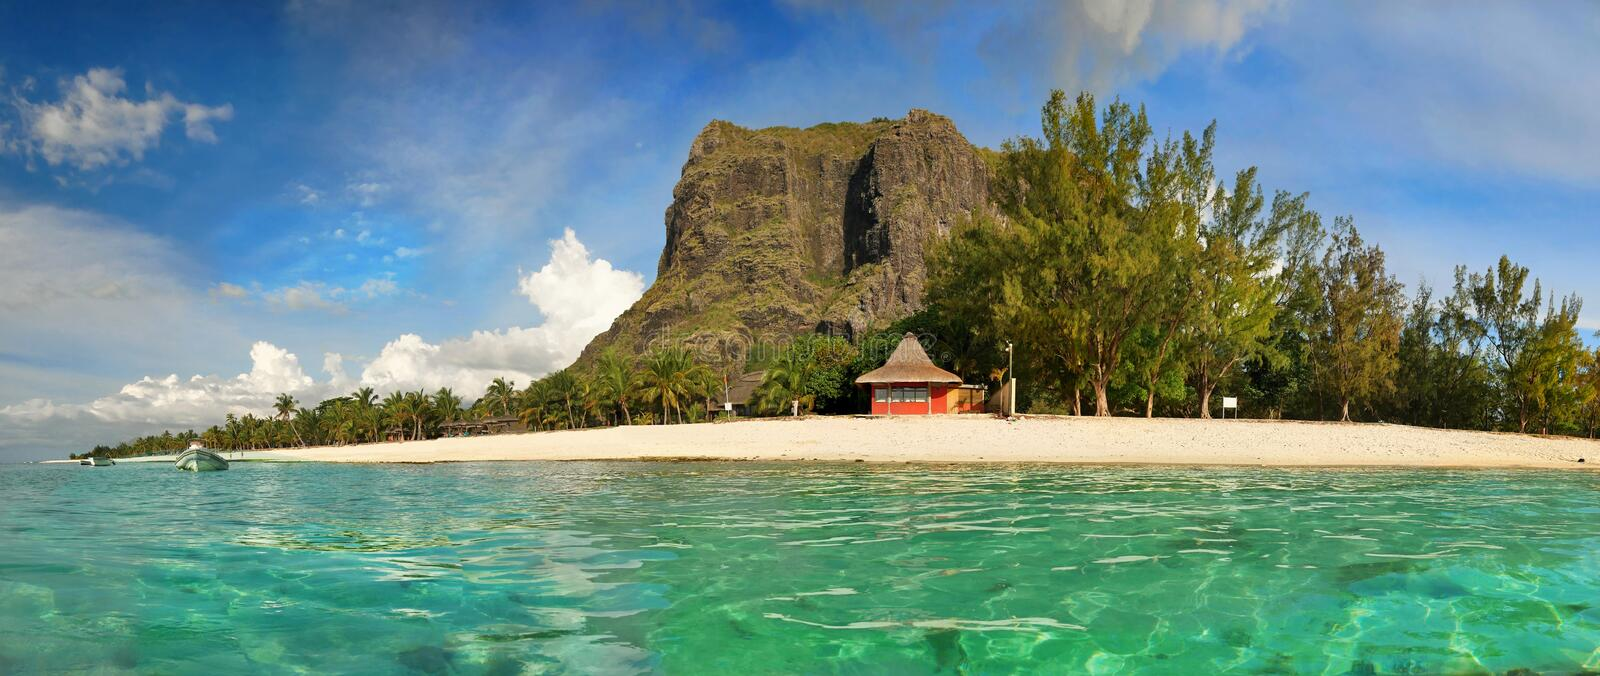 Mauritius Island, Le Morne Beach, Luxury Vacation Resort stock image